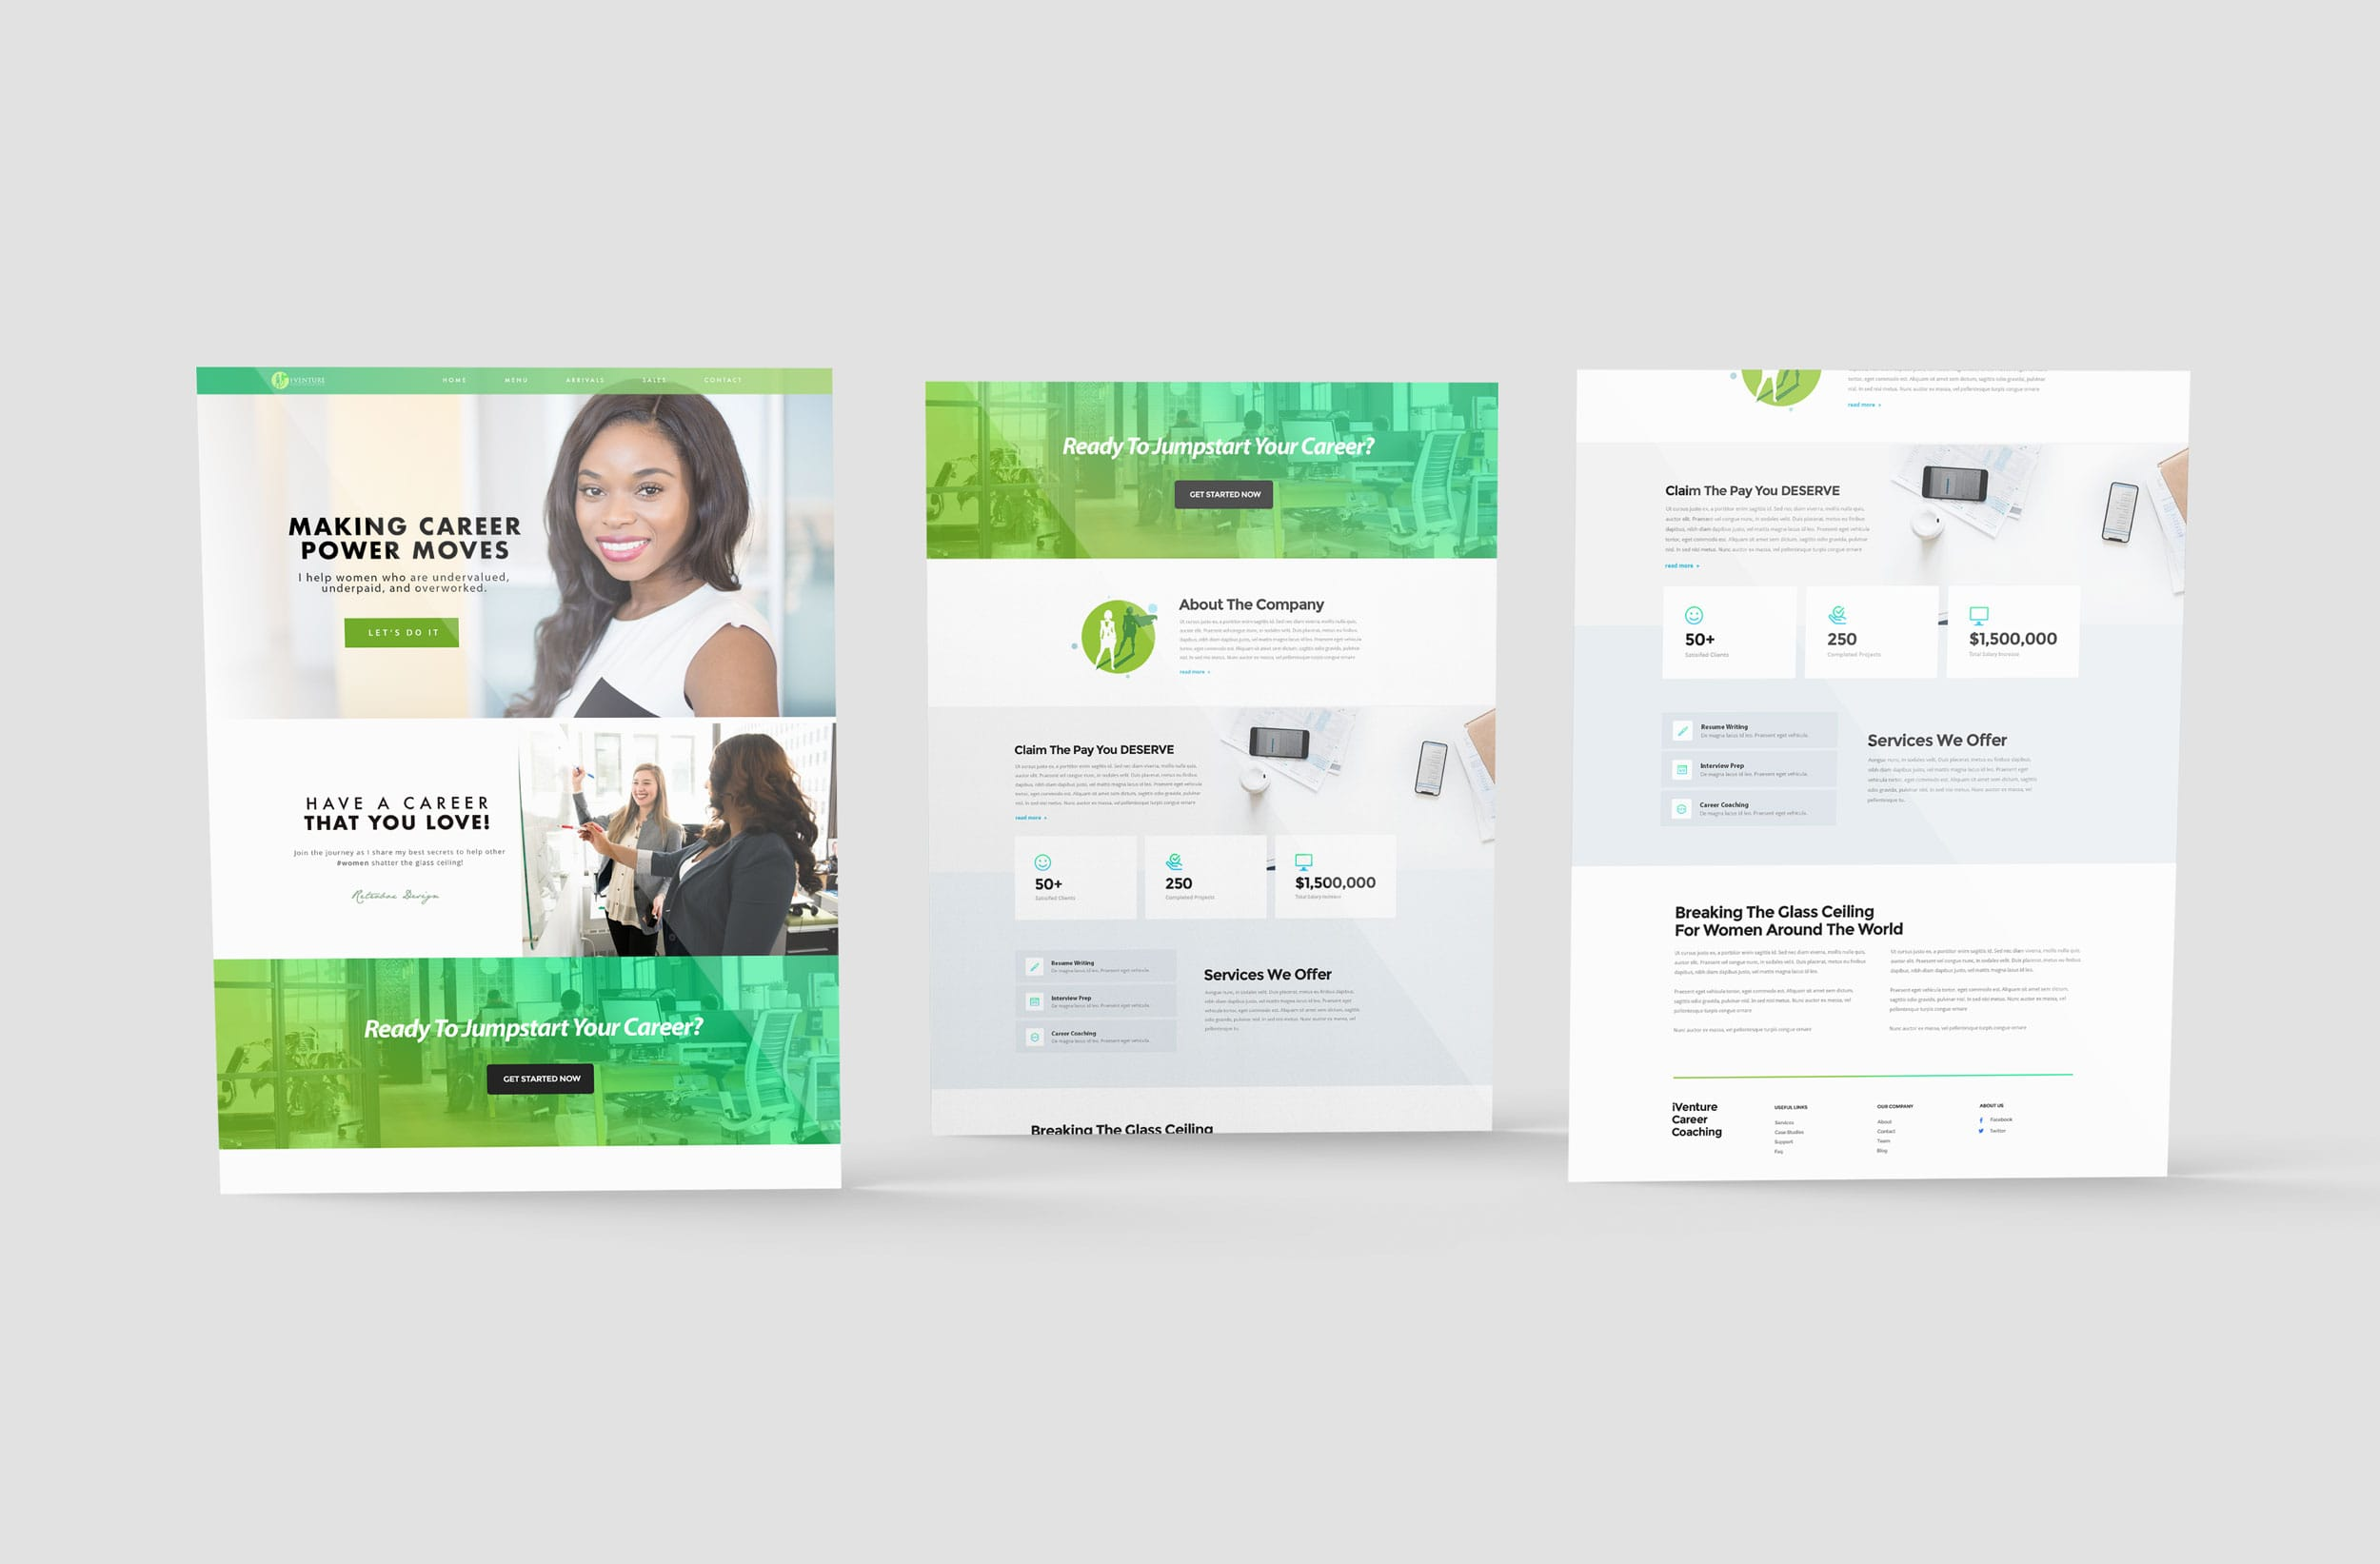 Pheelosophy - I-Venture Career Coaching Website Design Mockup